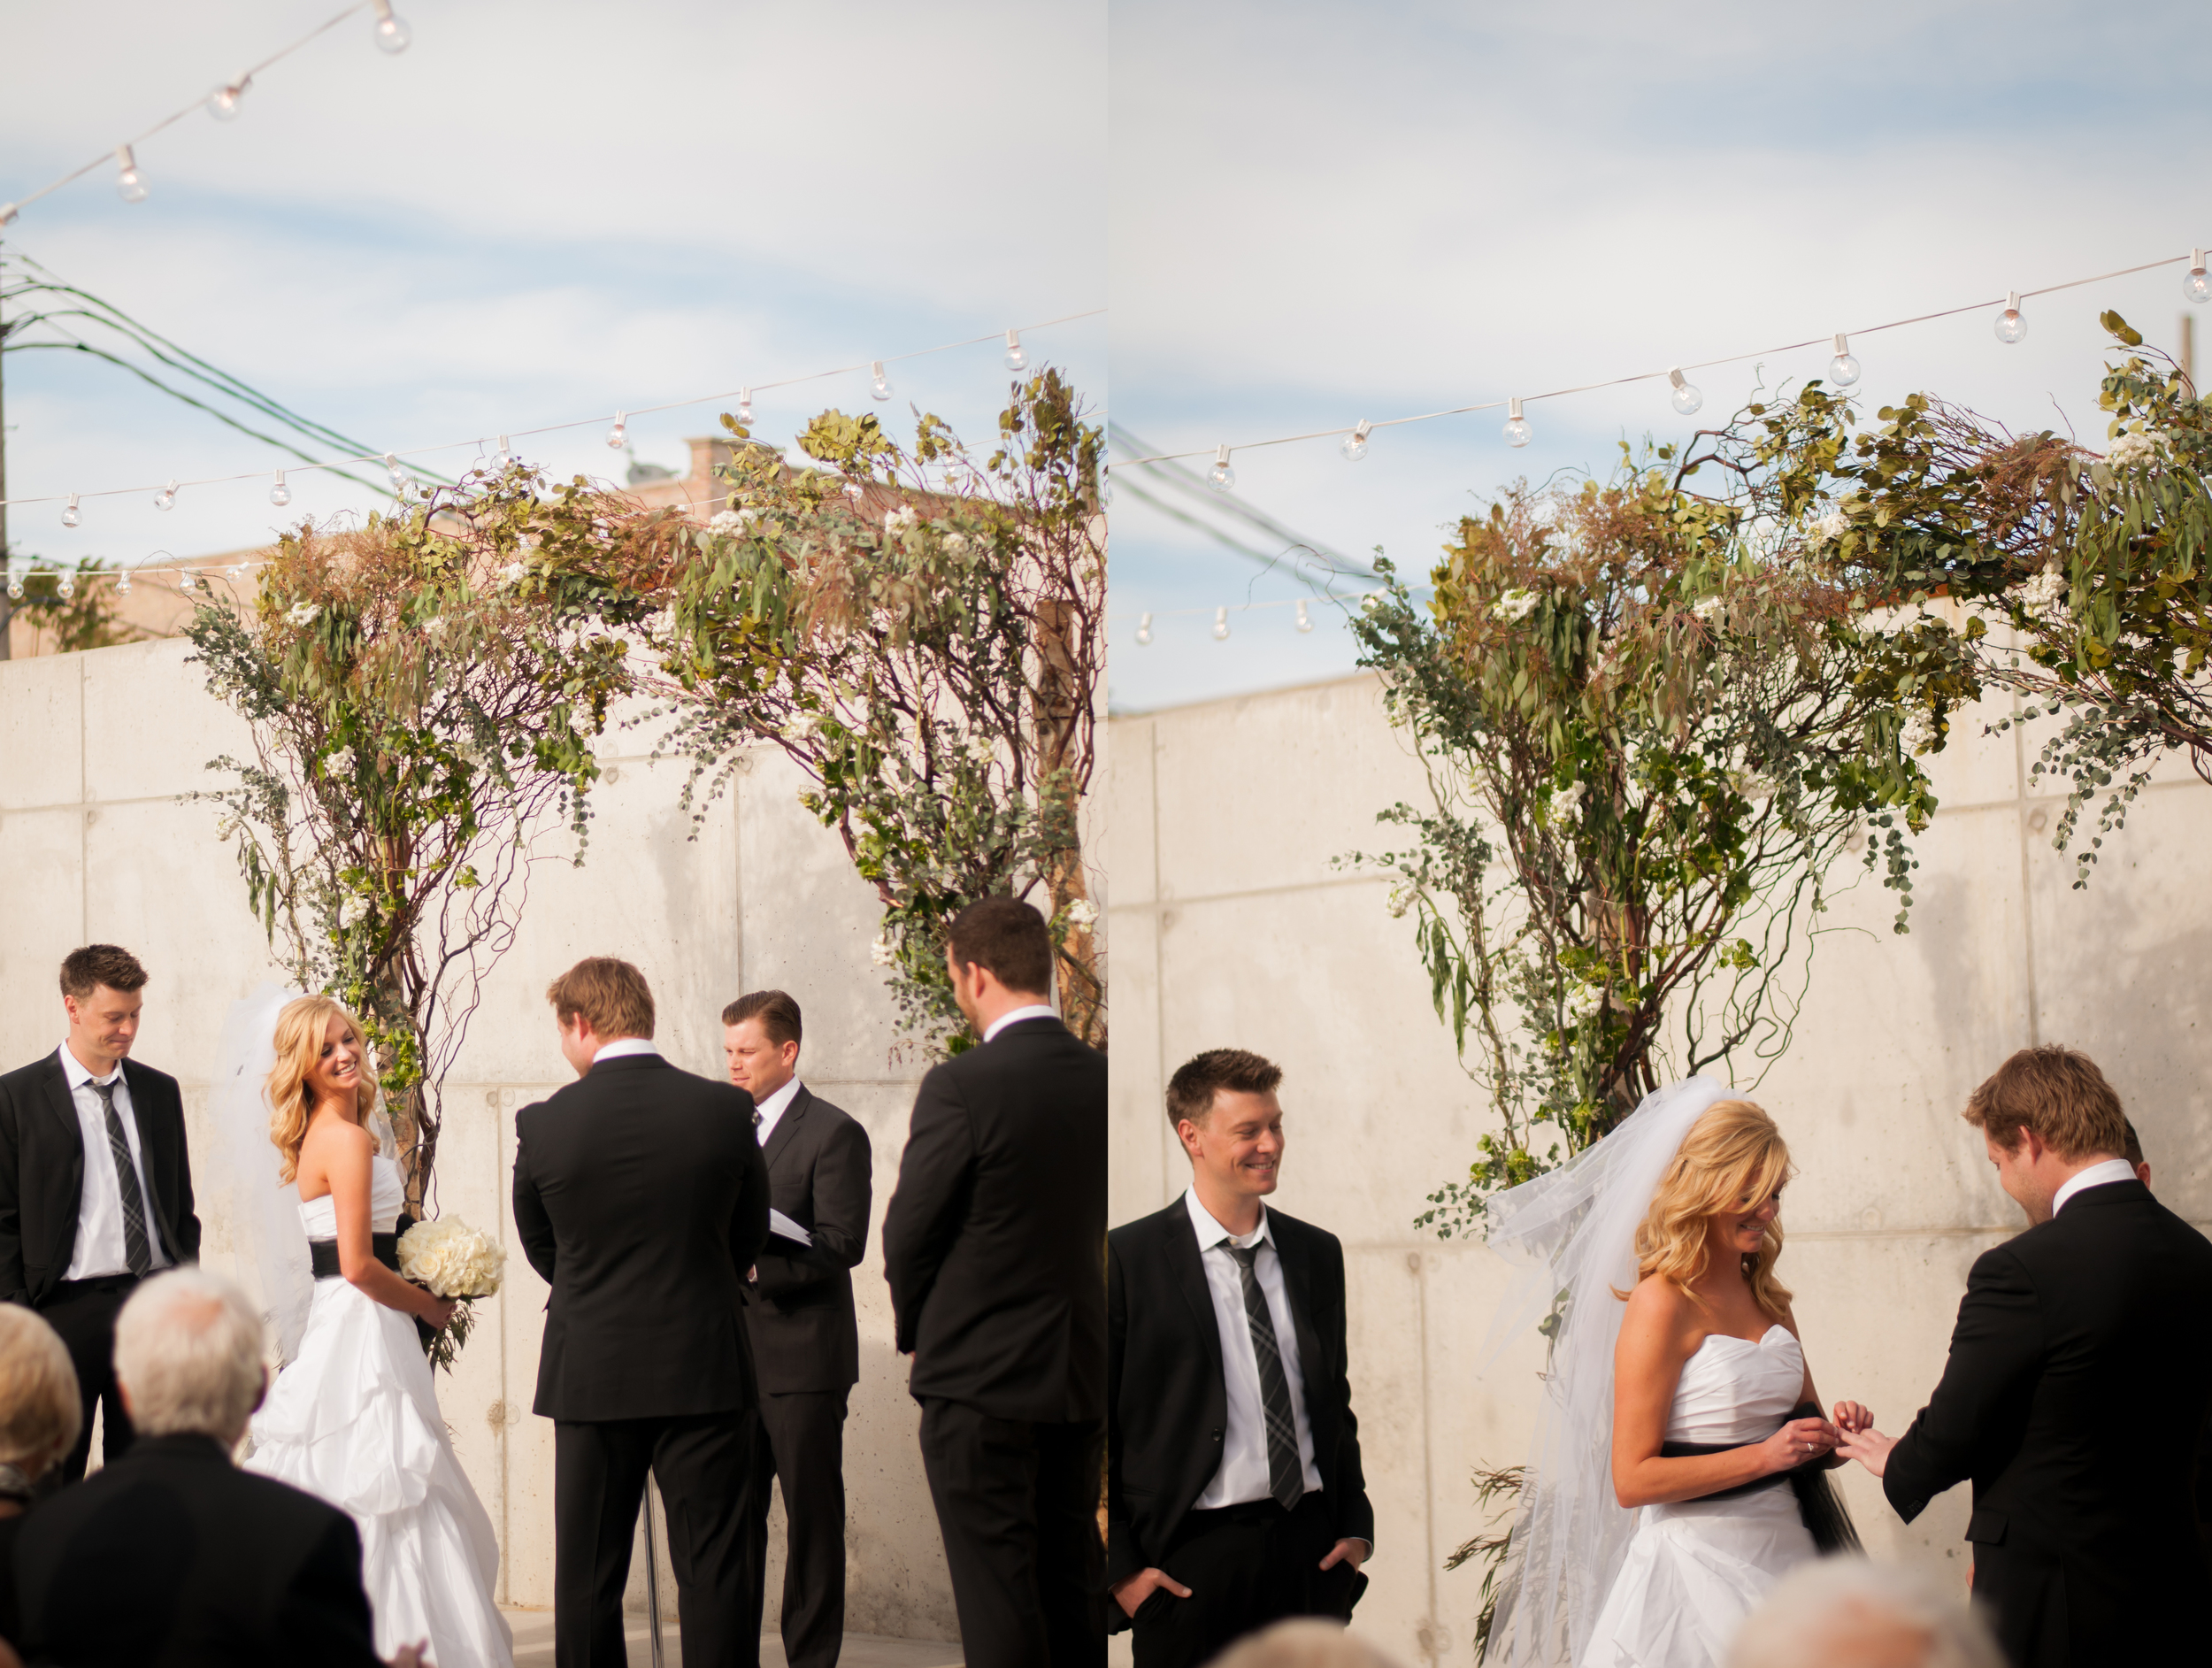 meredith donnelly photography-51.jpg